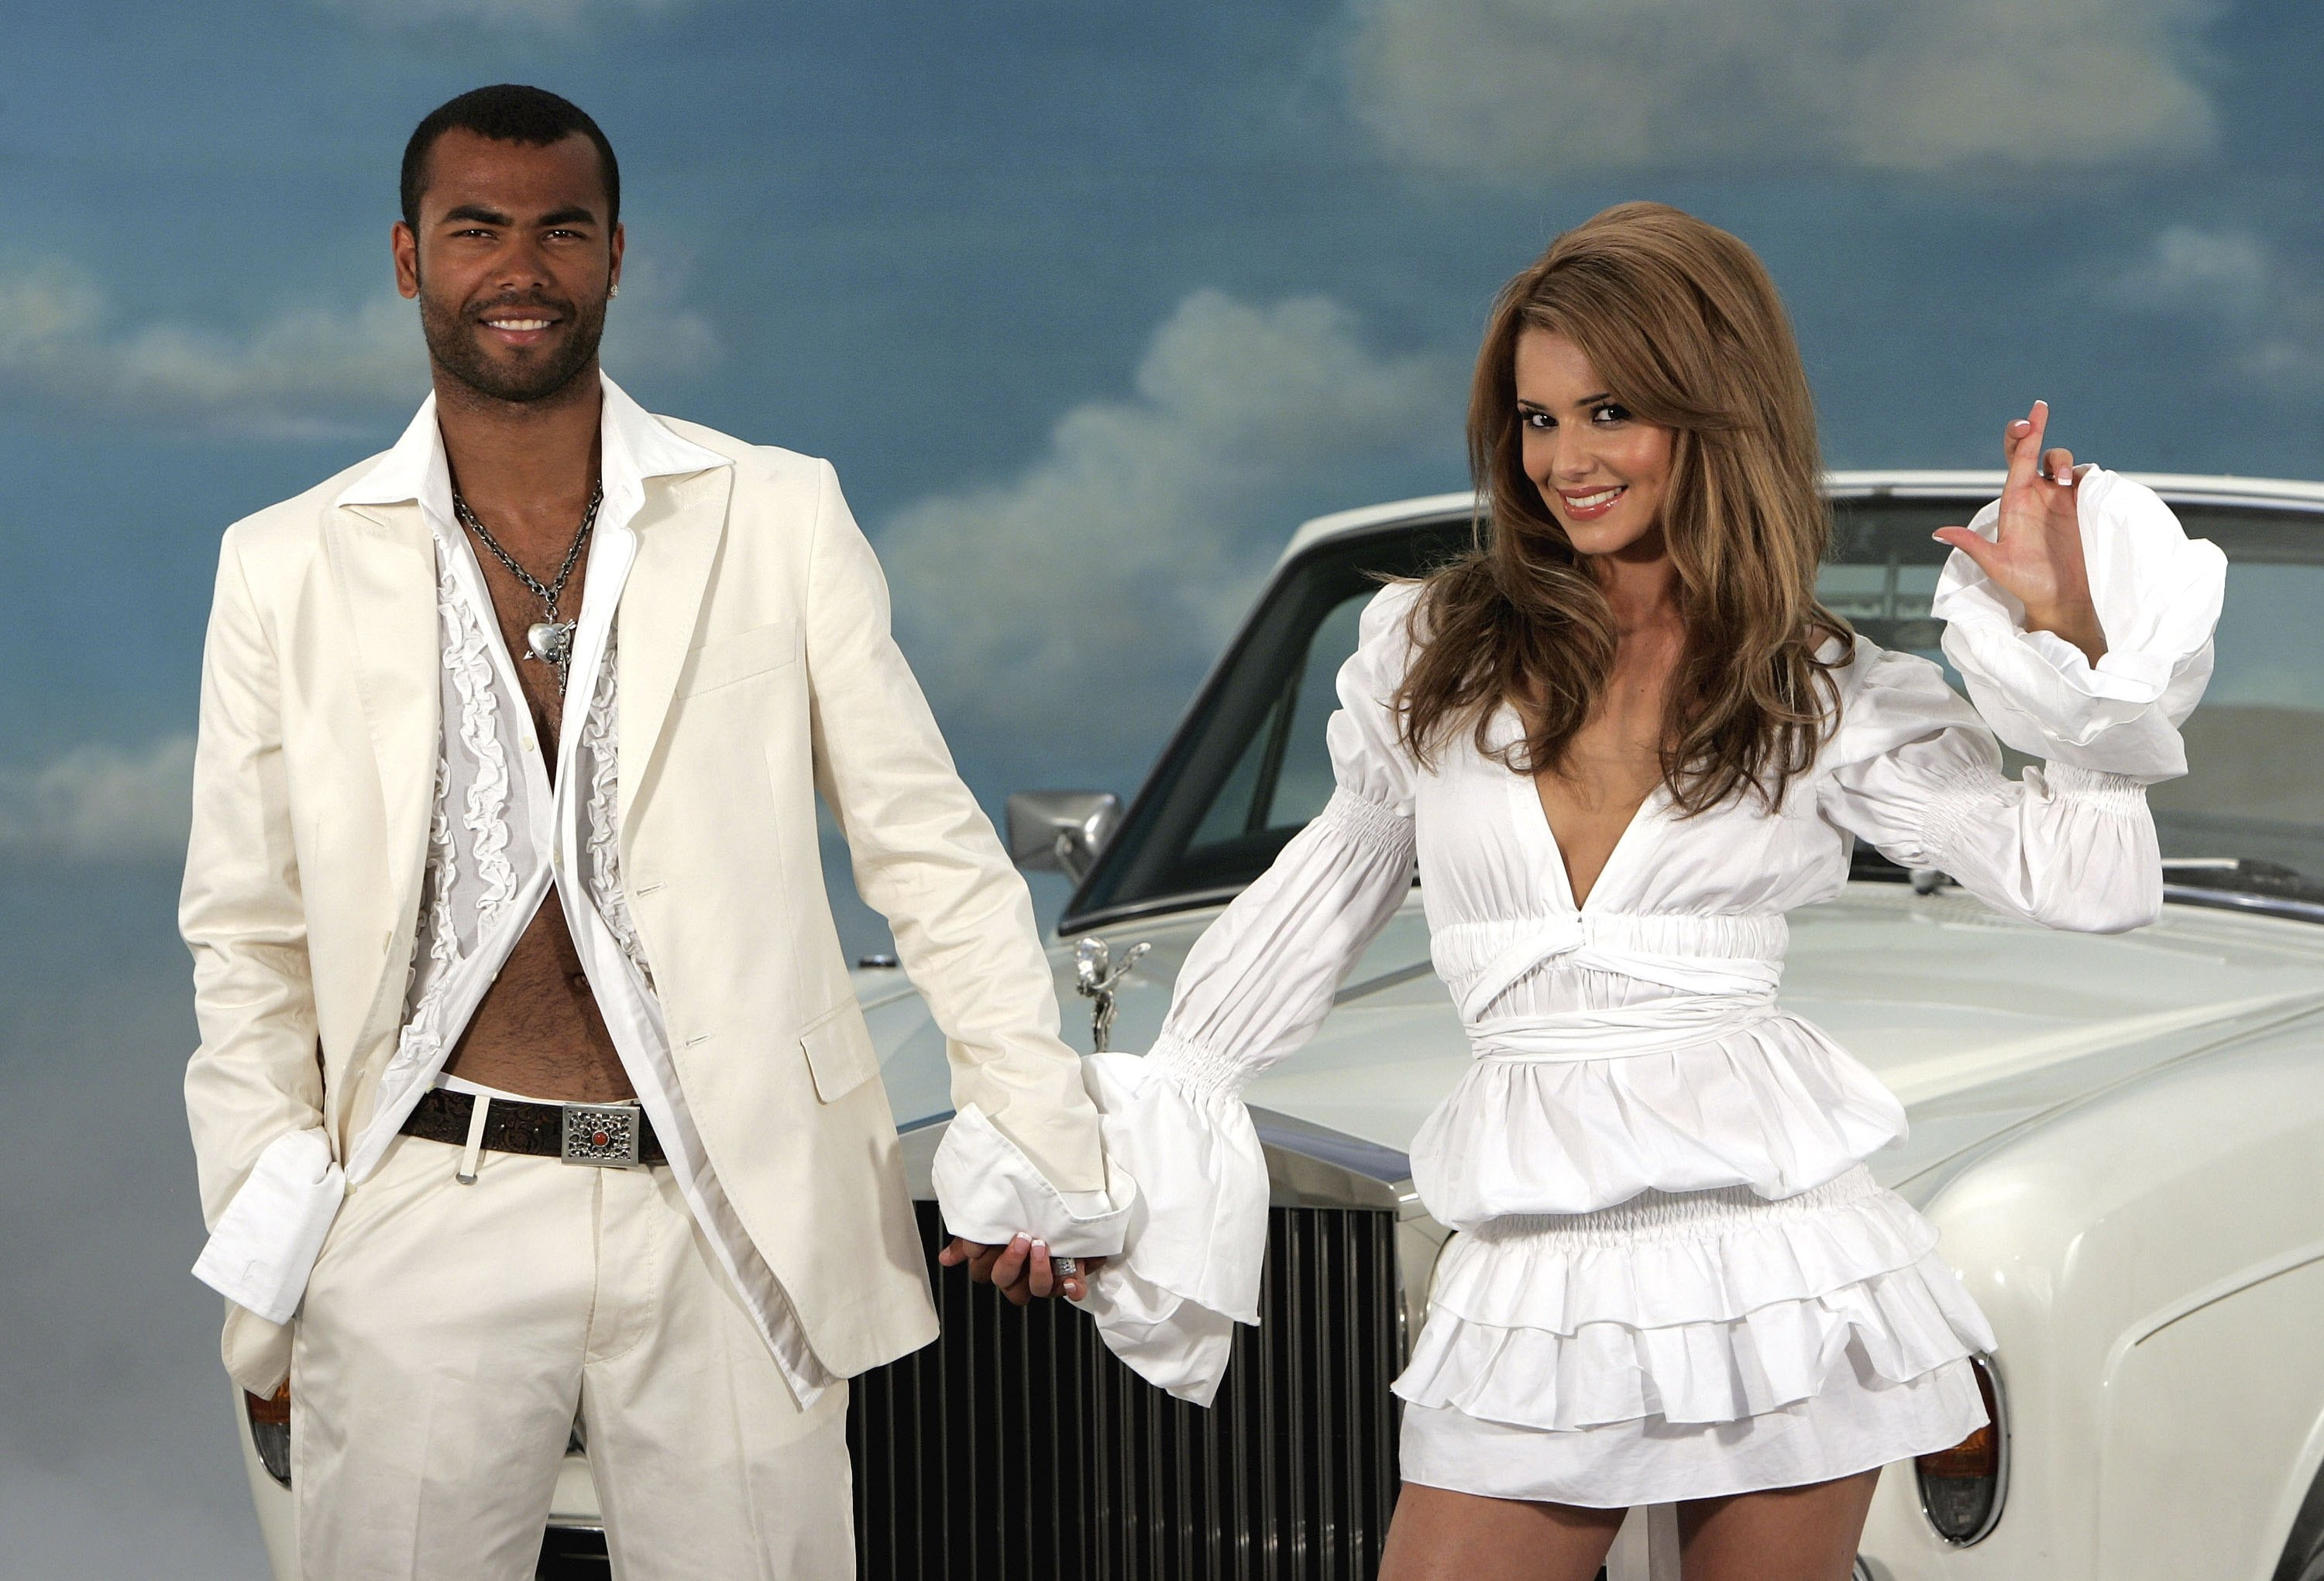 LONDON - JULY 11:  Singer Cheryl Tweedy of Girls Aloud and Footballer Ashley Cole pose in front of a Rolls Royce as they promote National Lottery's new Dream Number in Jasmine Studios on July 11, 2006 in London, England. Players can try to match all seven